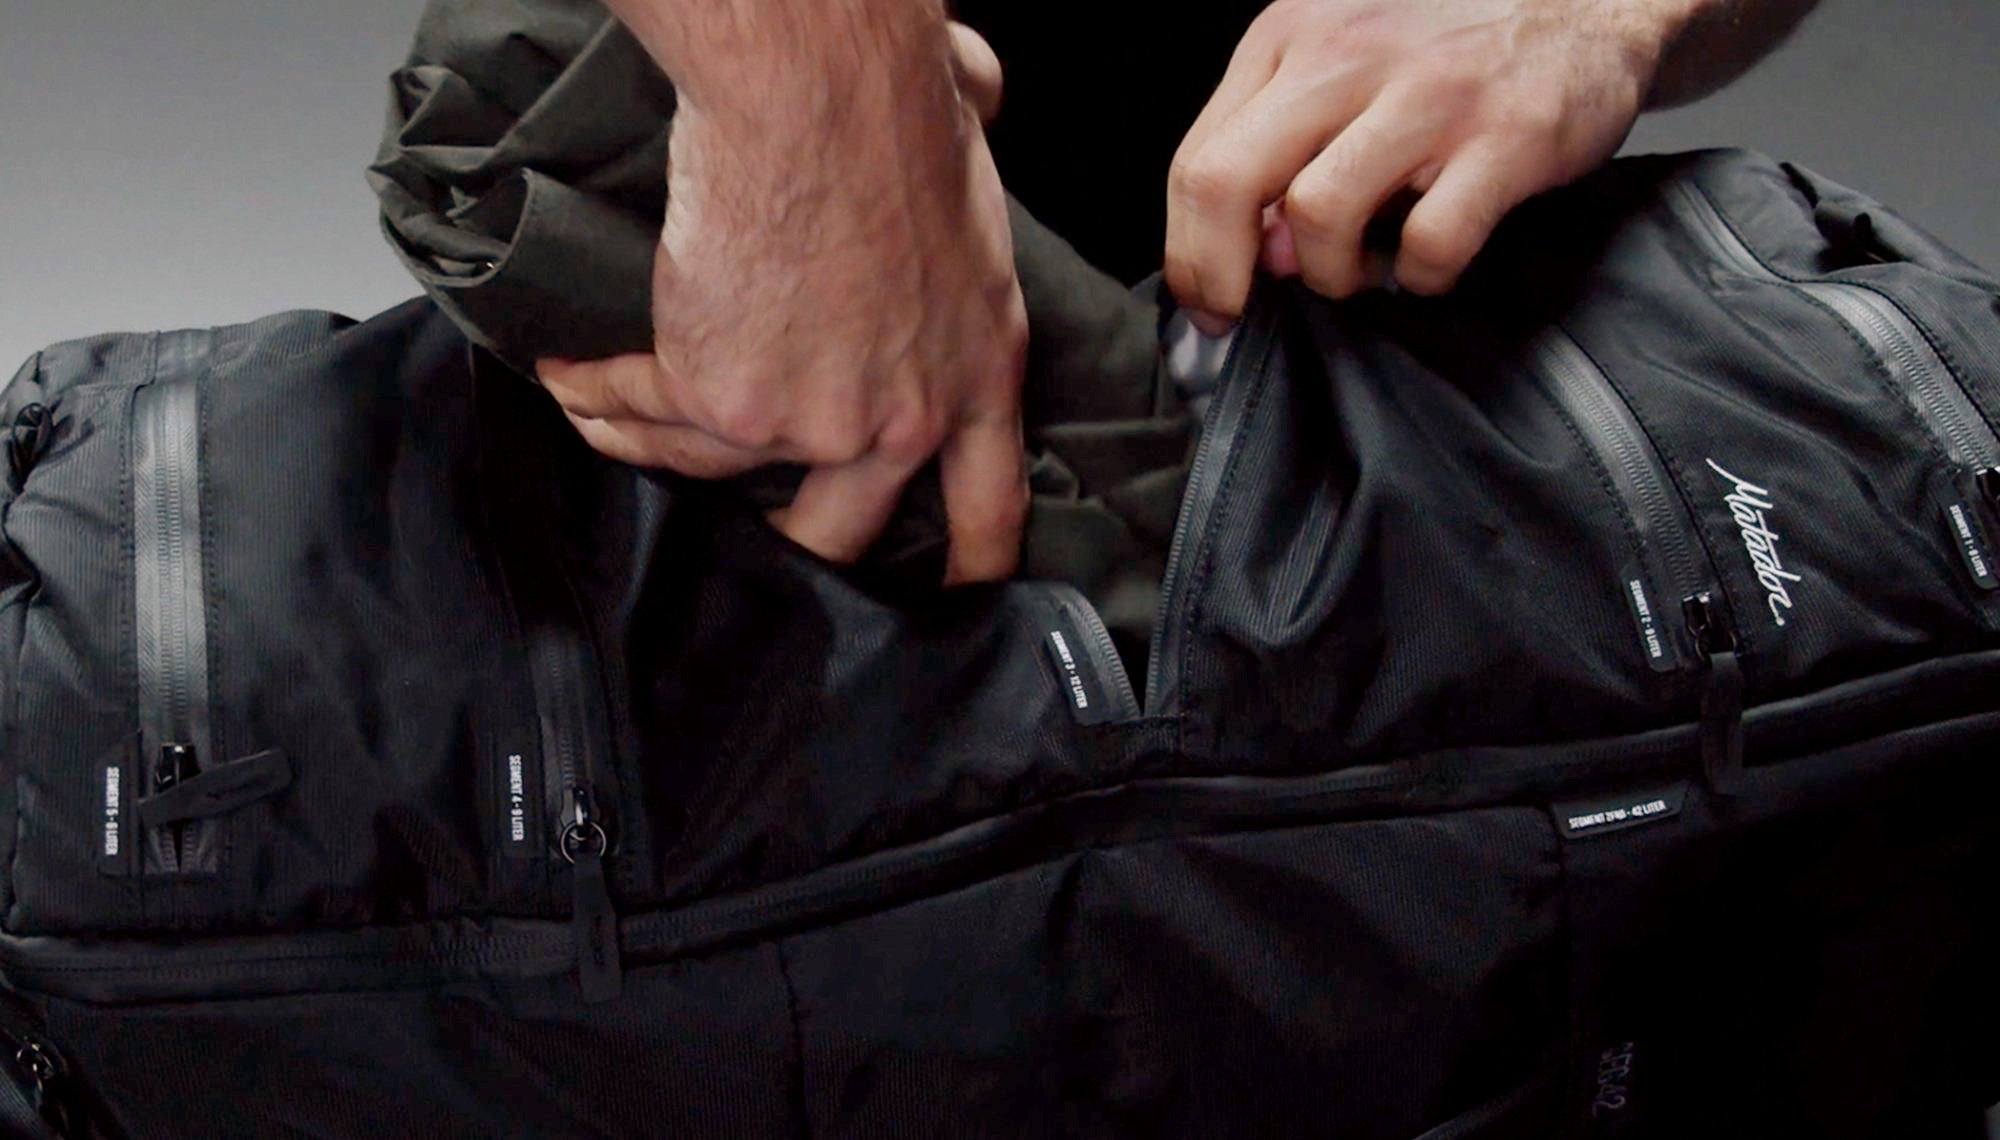 Man stuffing clothing into zipper compartment